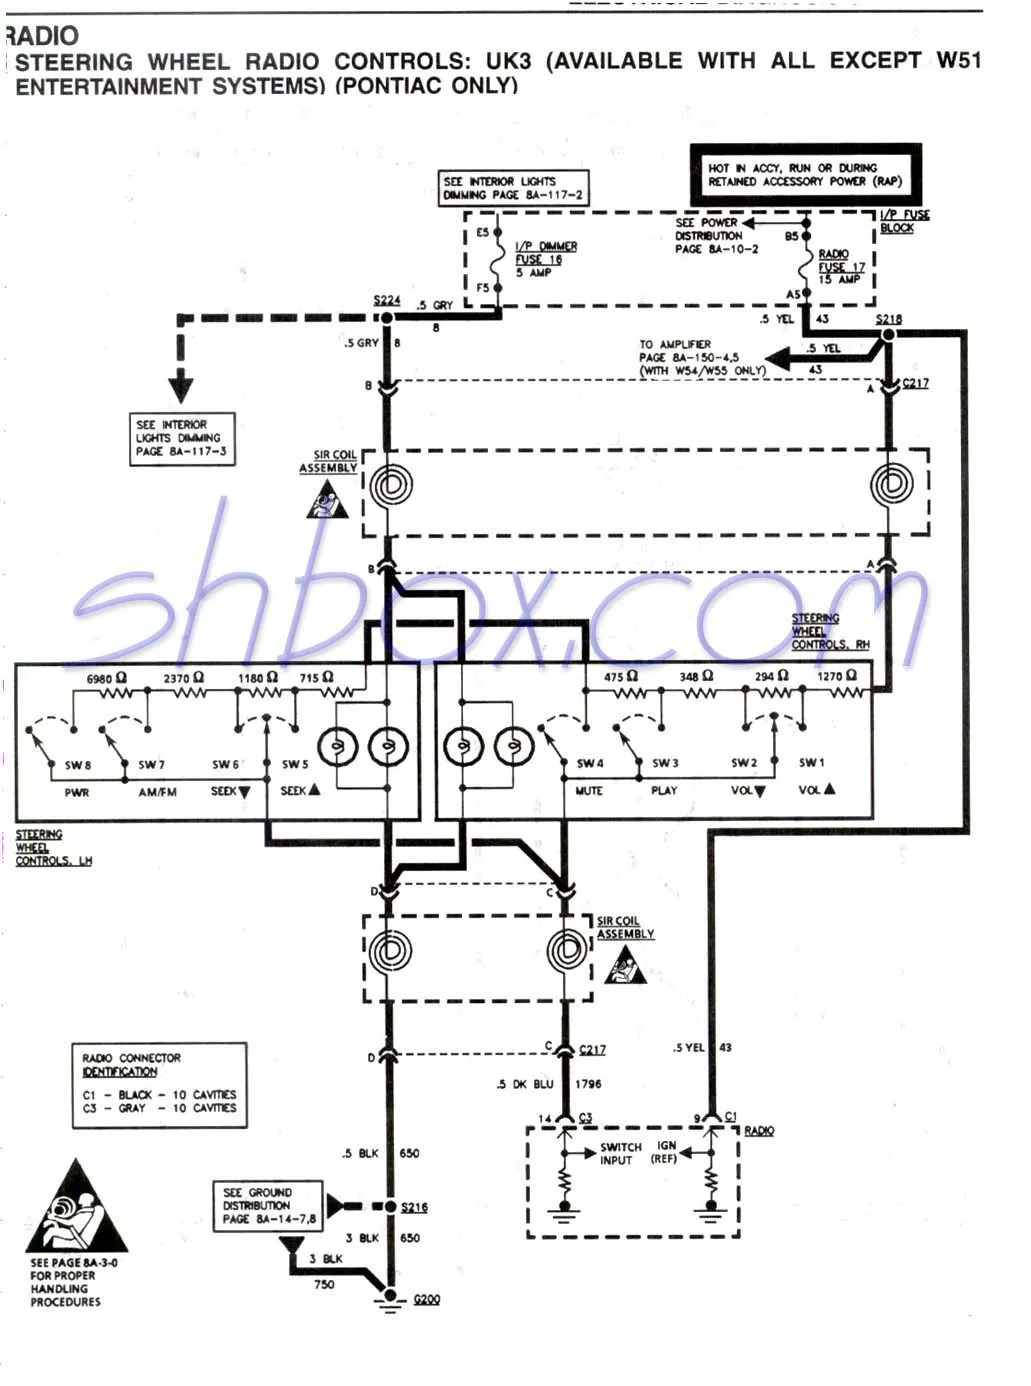 hight resolution of 1996 camaro radio wiring diagram wiring diagrams rh 9 57 jennifer retzke de 1996 camaro traction control wiring diagram 94 camaro wiring diagram